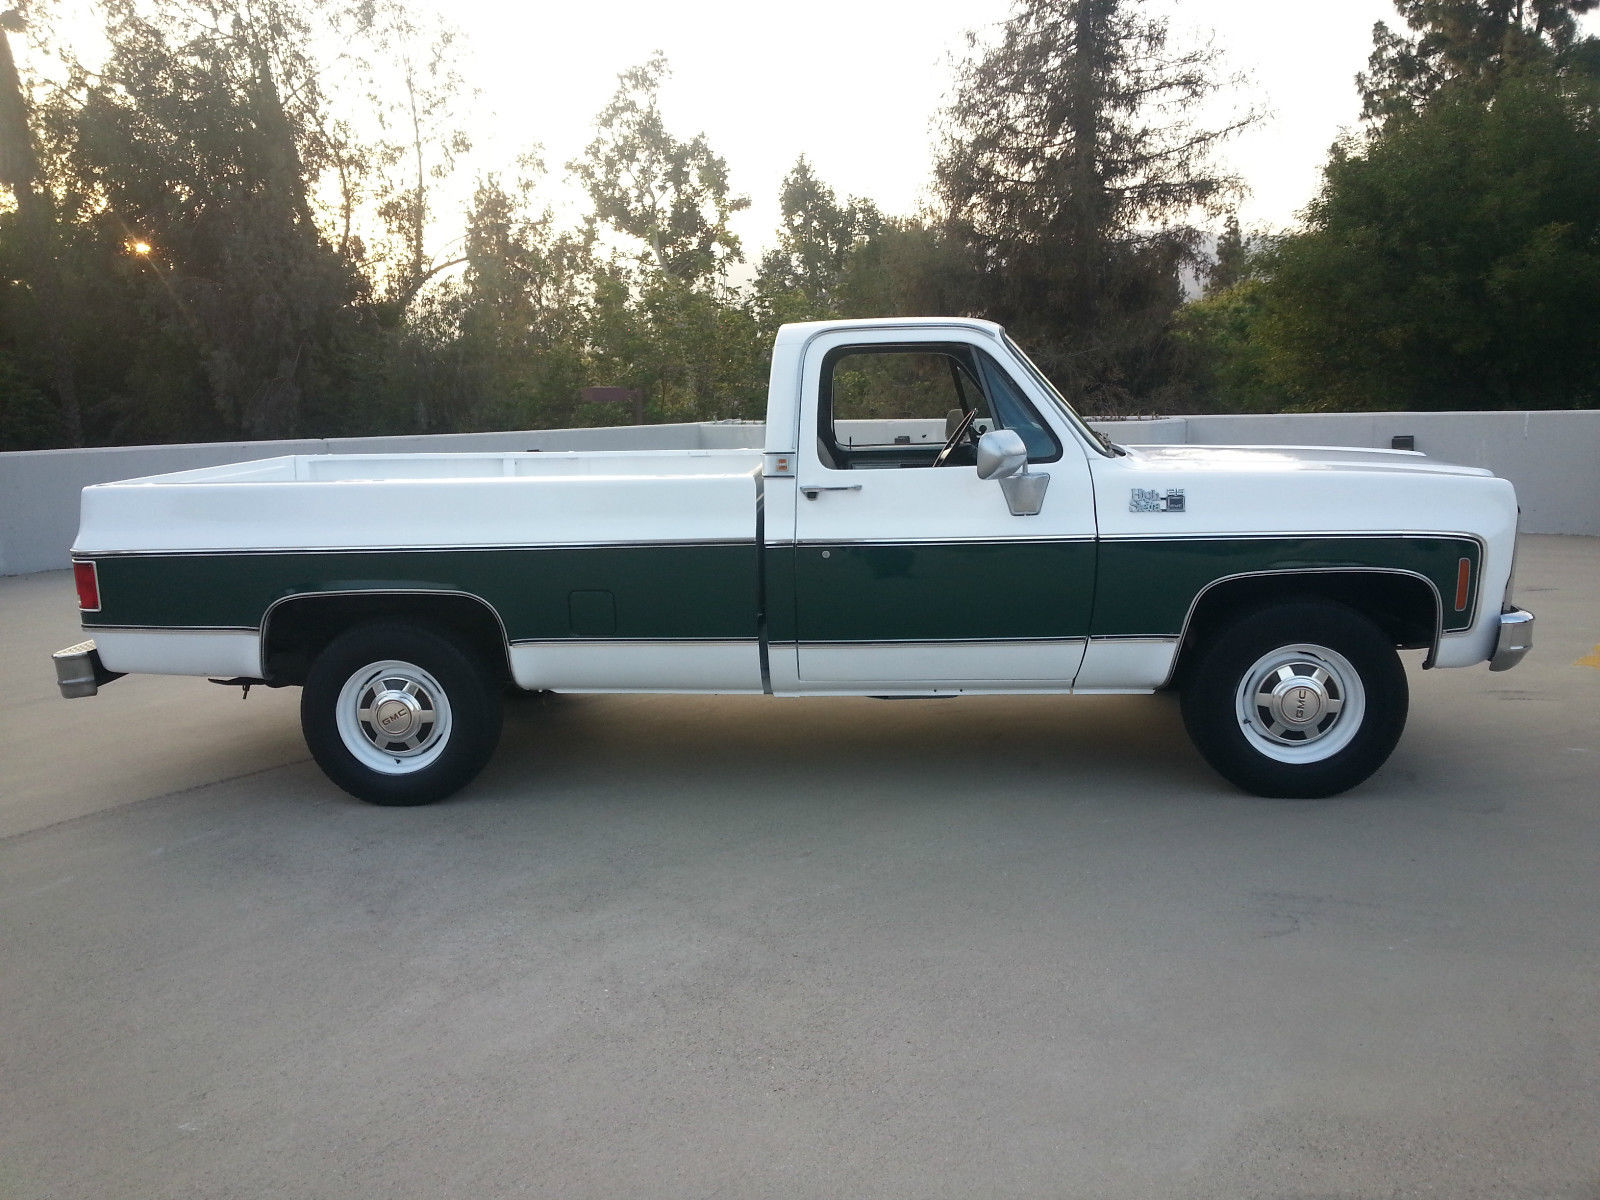 All American Classic Cars: 1979 GMC 2500 High Sierra ...